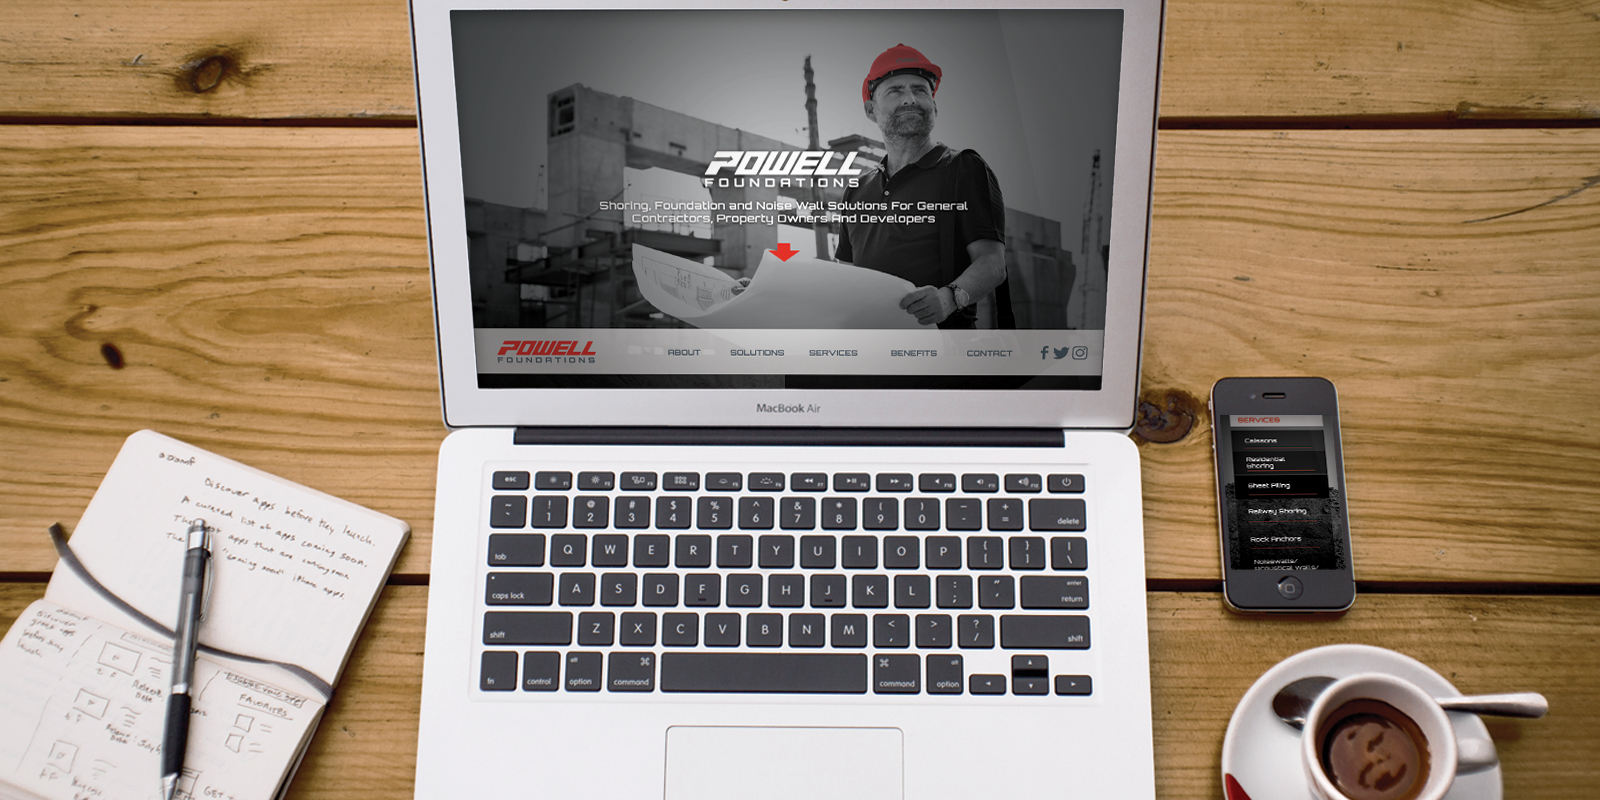 Powell Foundations landing page